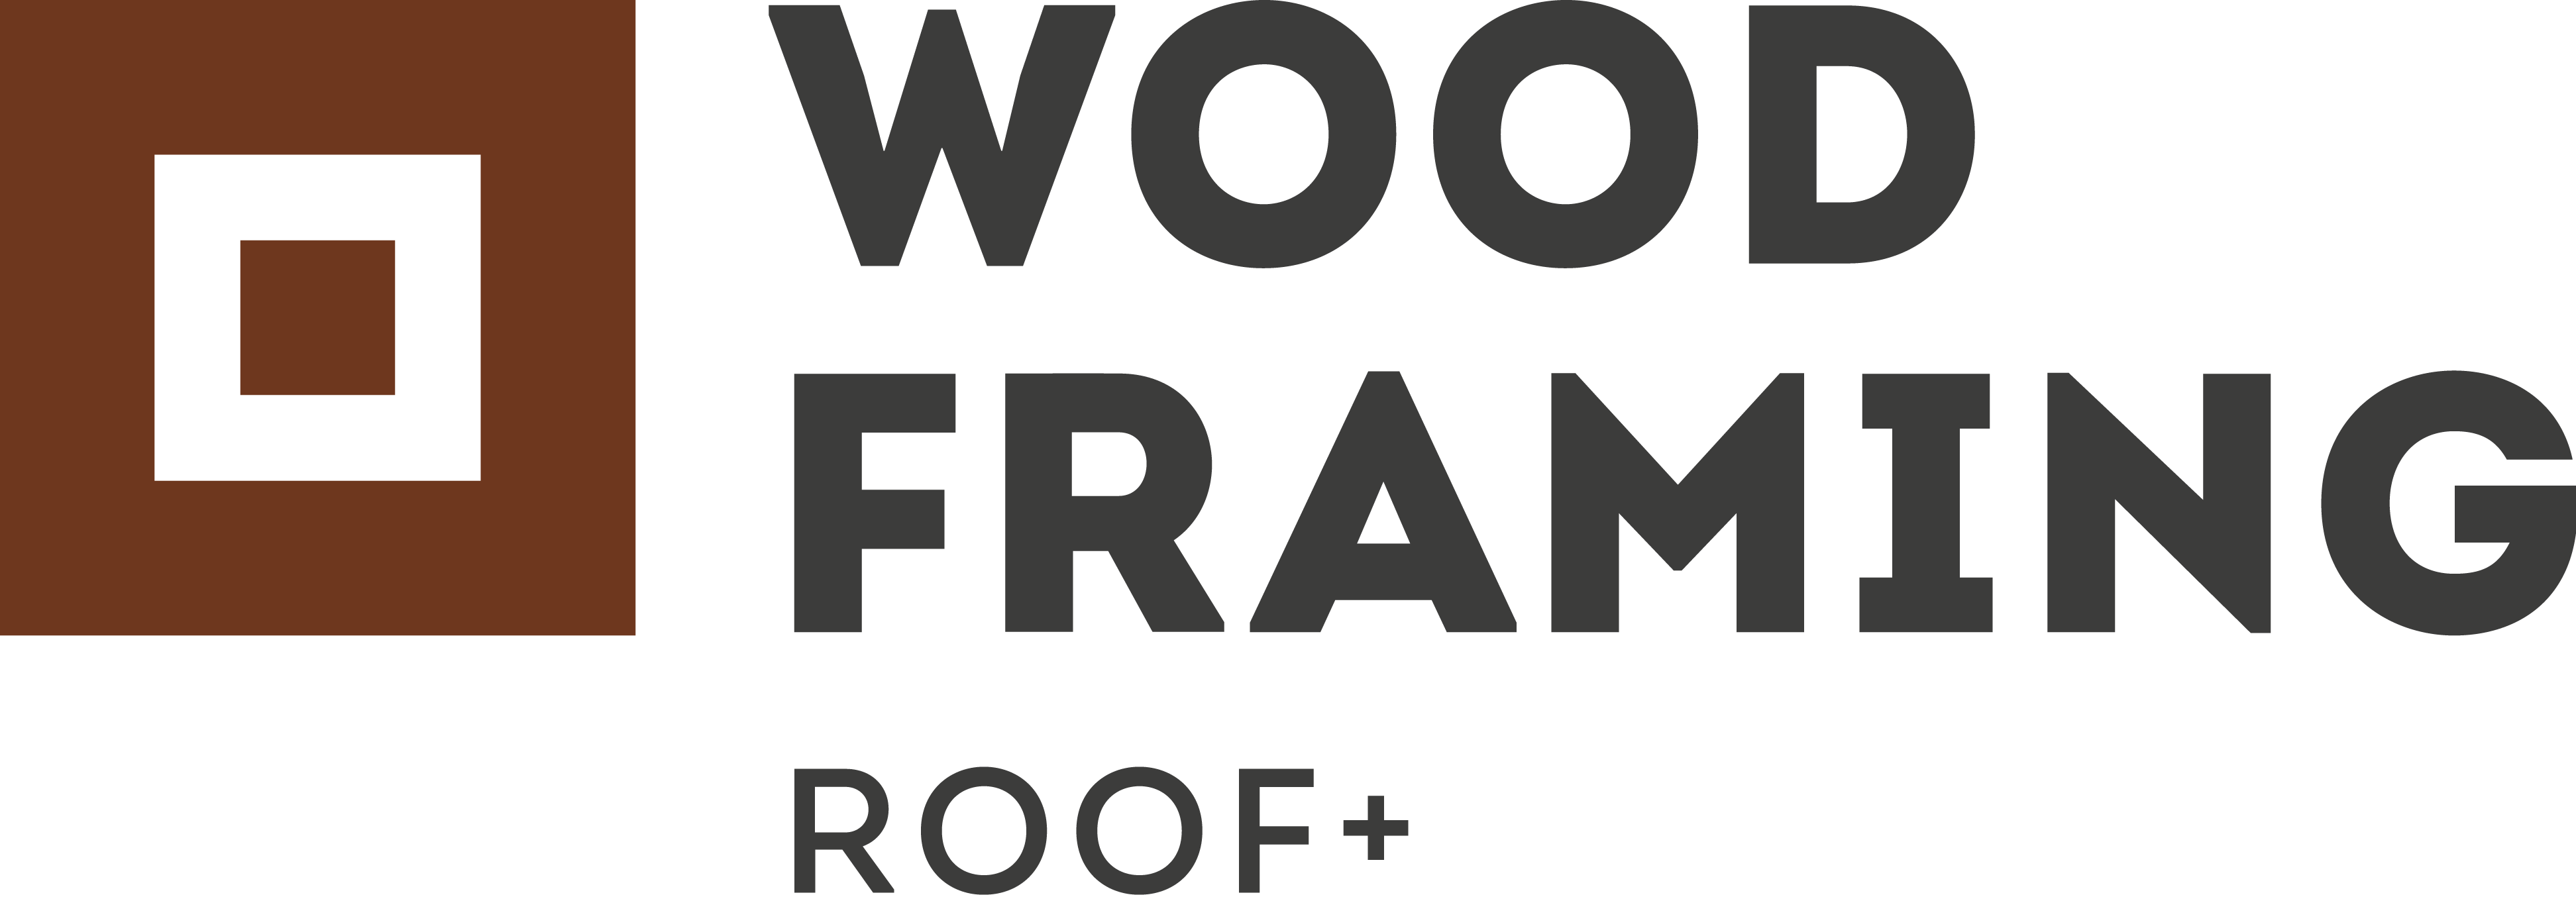 https://agacad.com/products/bim-solutions/wood-framing-roof